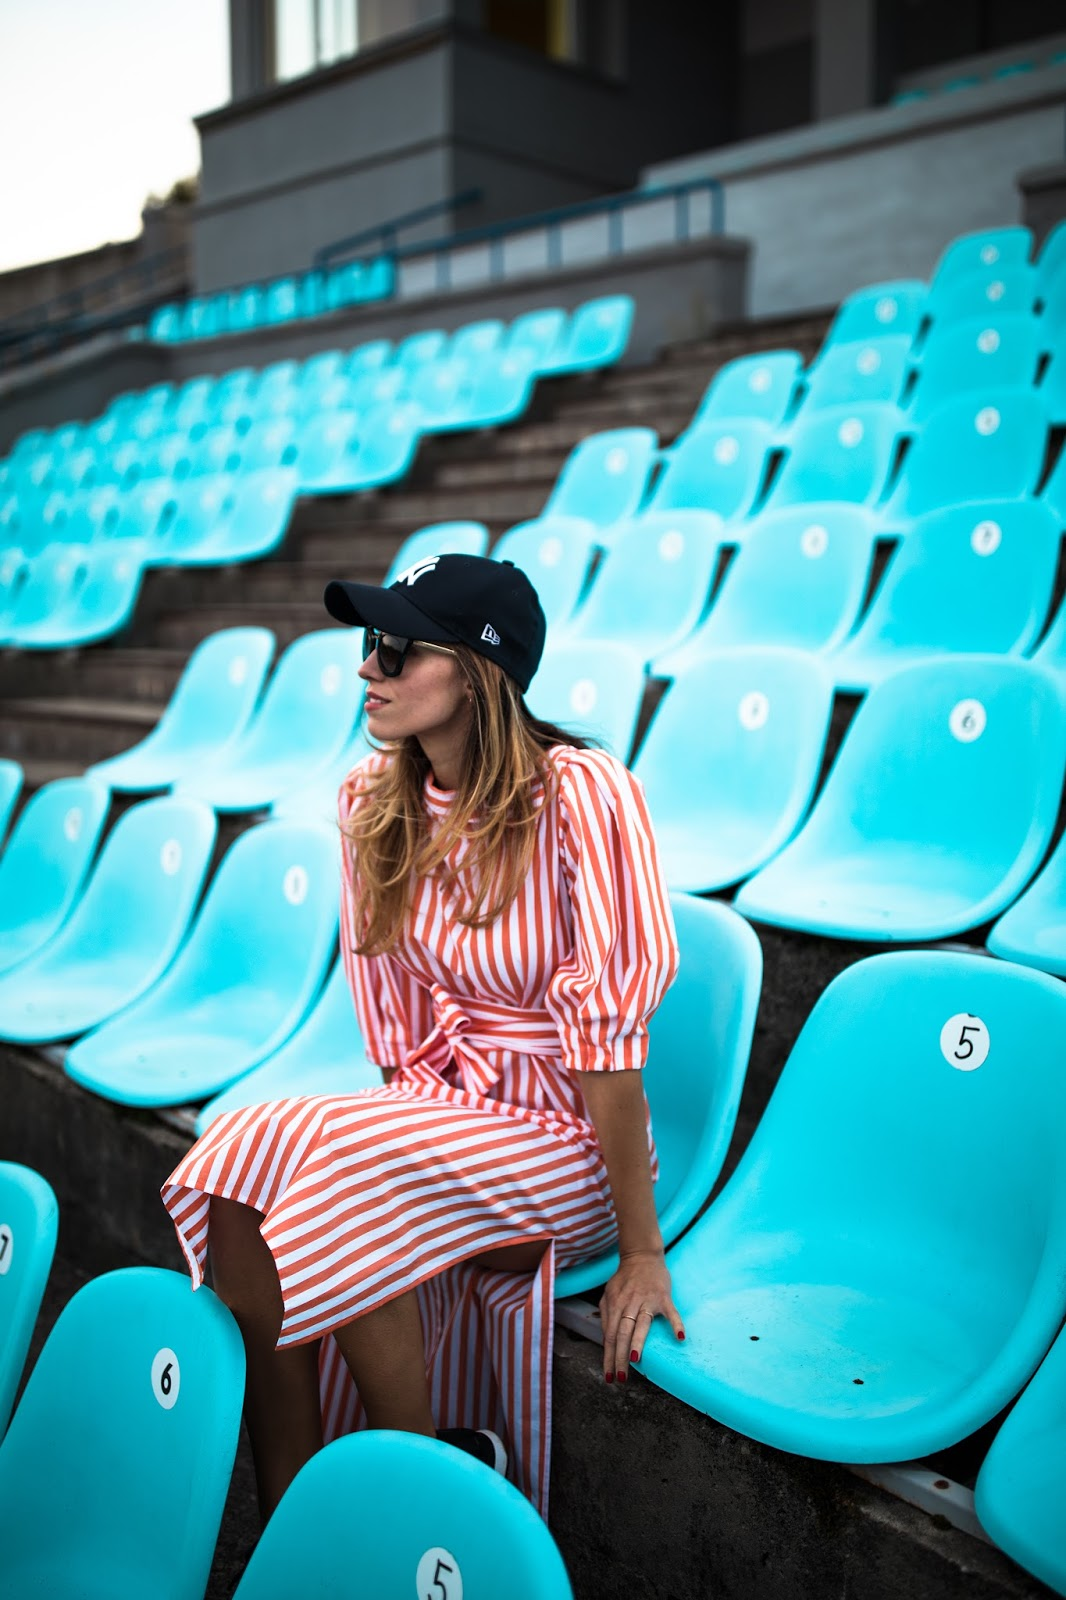 red striped midi dress cap hat outfit